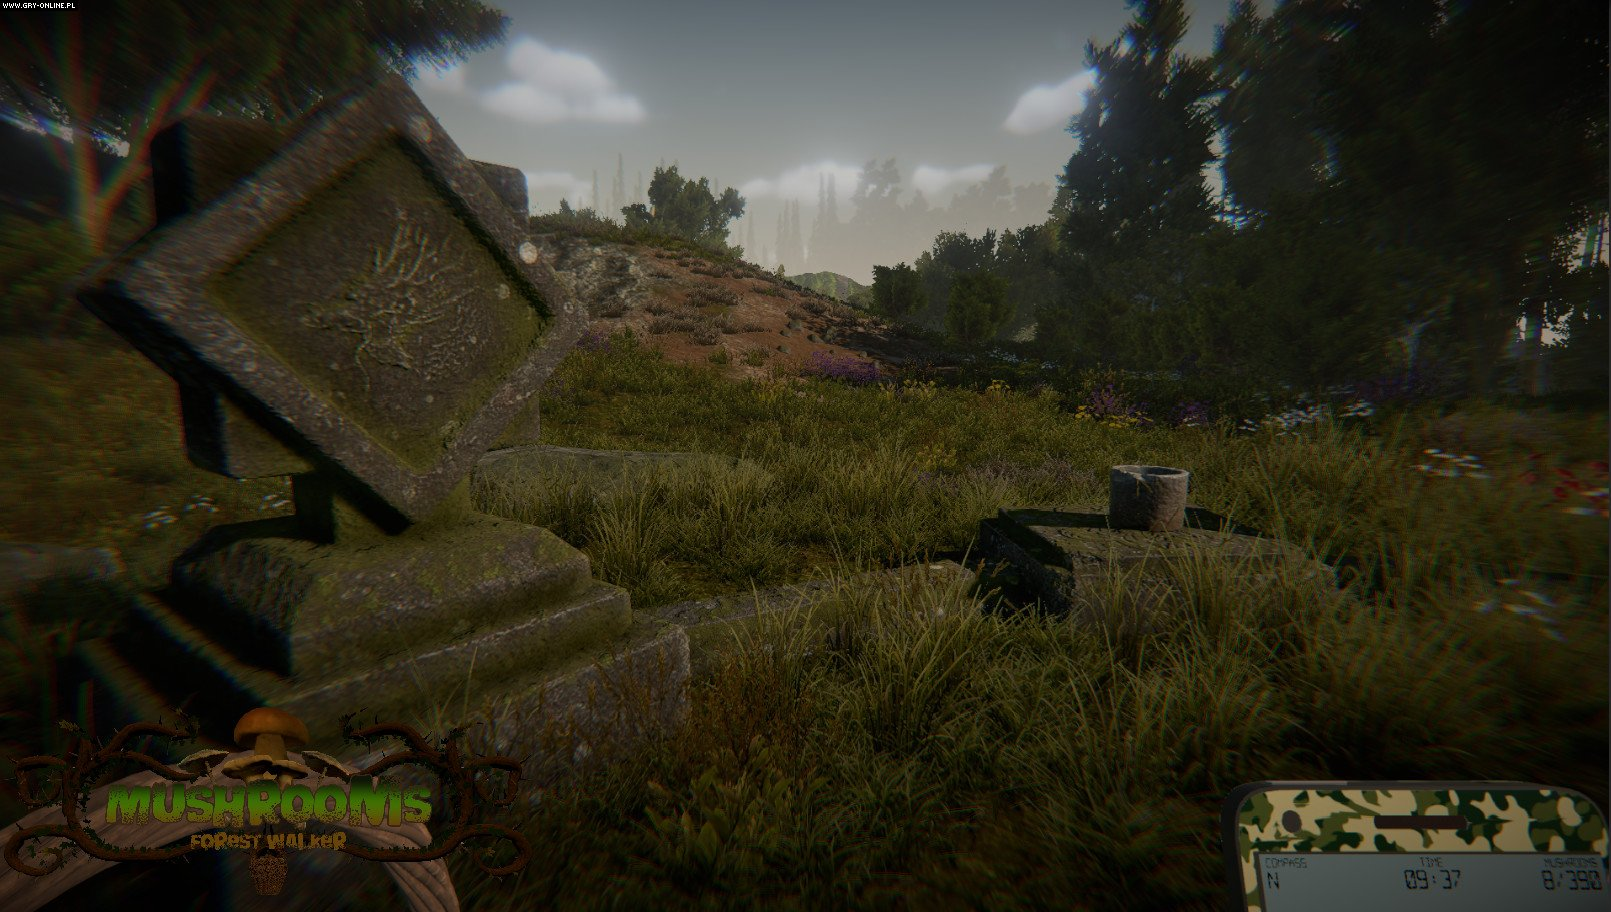 Mushrooms: Forest Walker PC Games Image 3/12, SimFabric